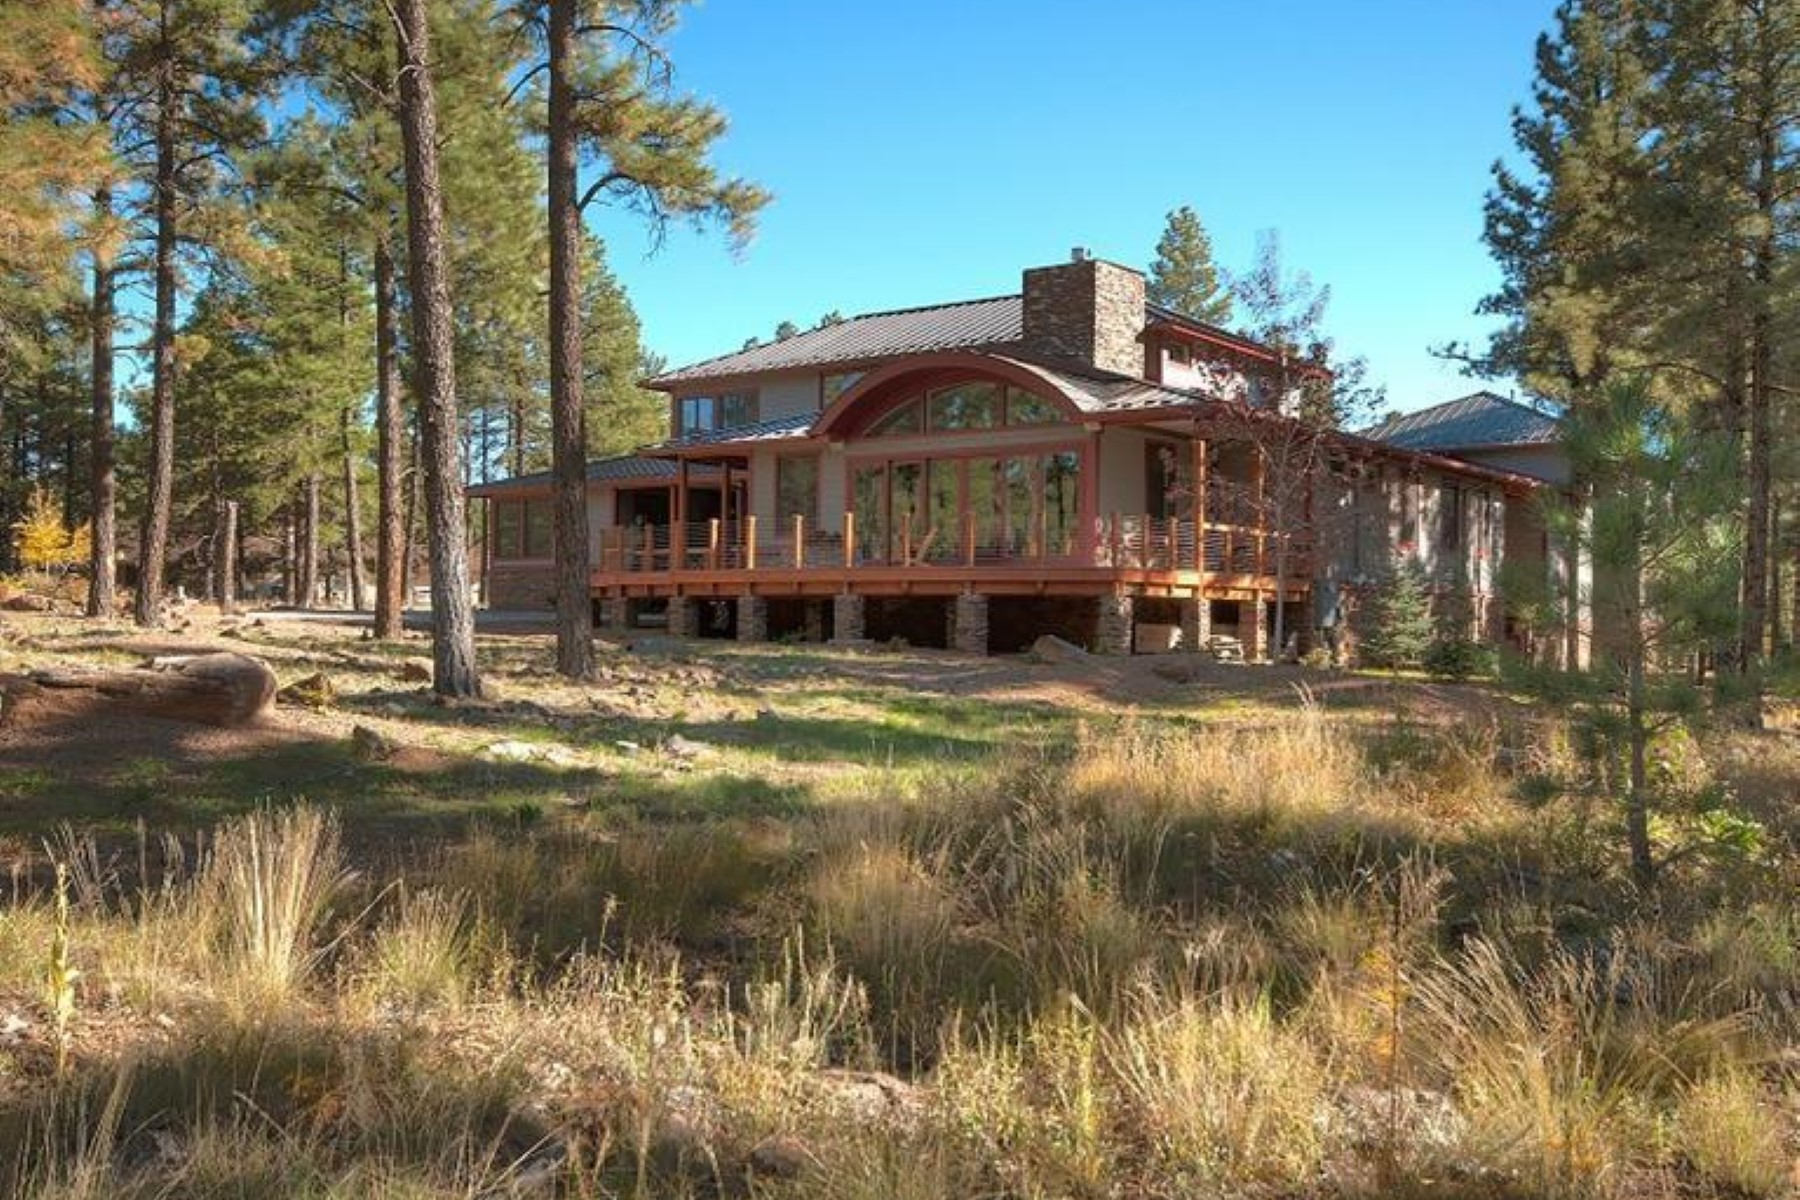 Single Family Home for Sale at Absolutely the nicest estate in all of Northern Arizona. 3315 N Antler Crossing Flagstaff, Arizona 86001 United States